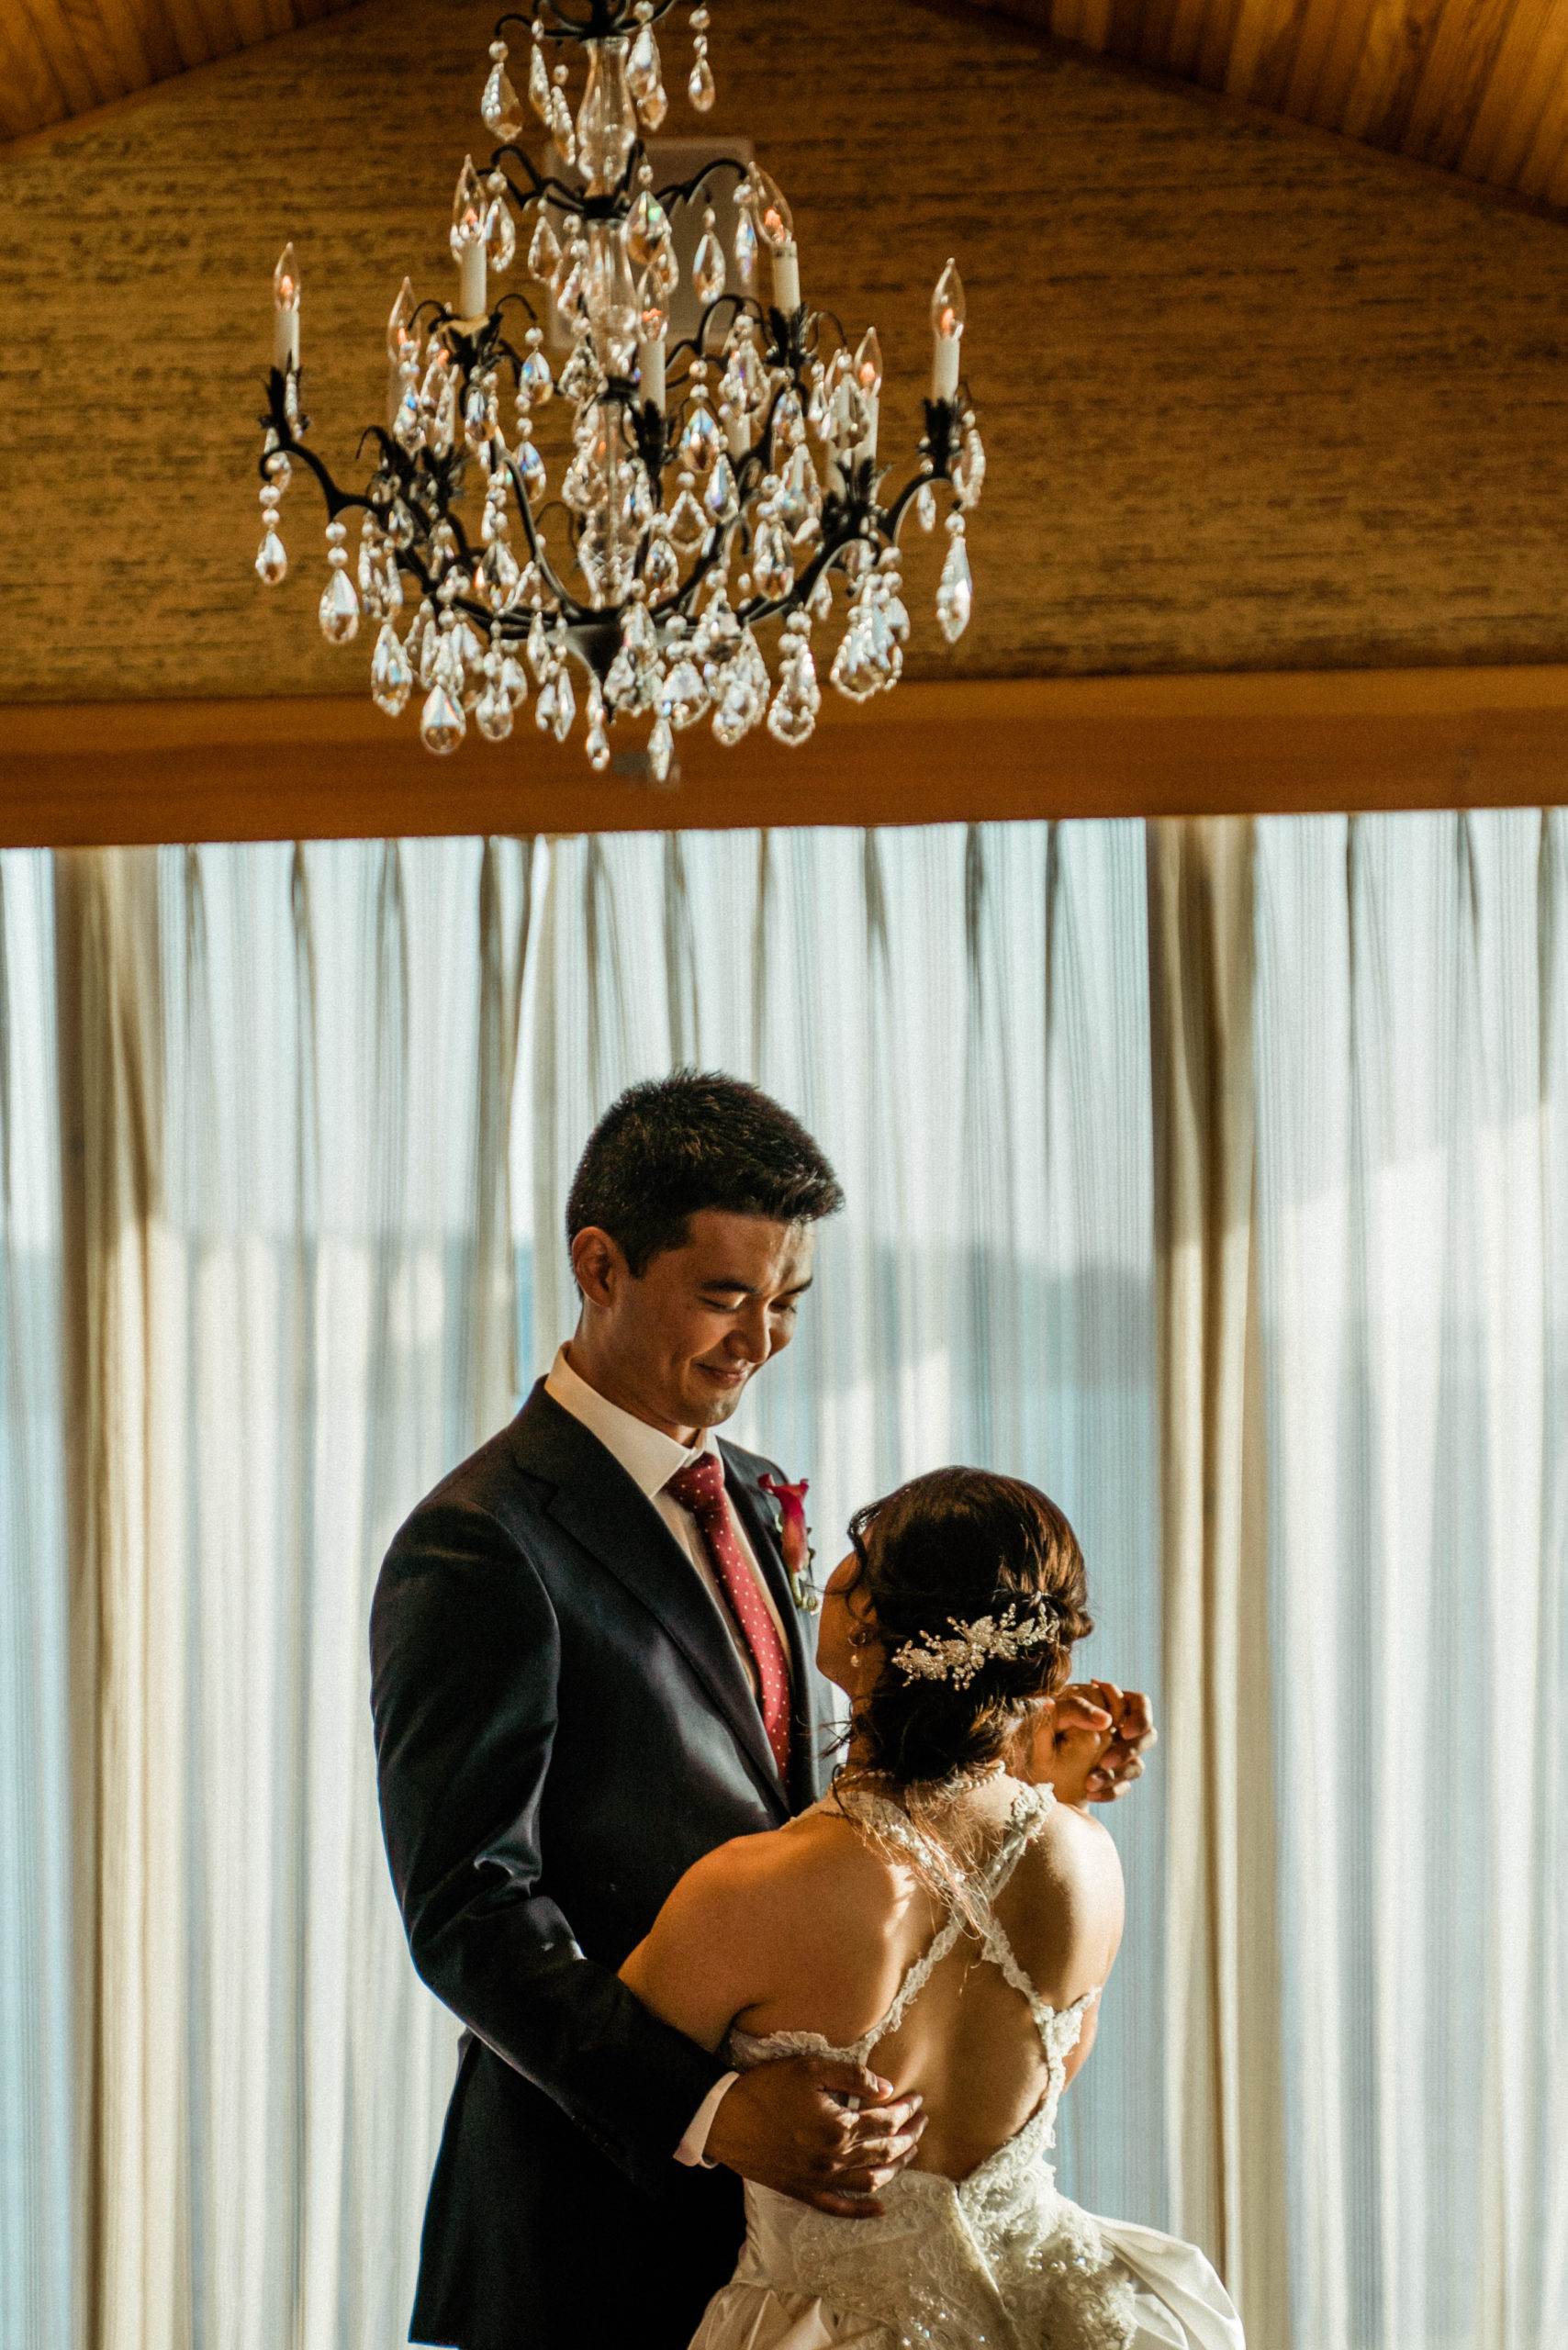 first dance in edgewater hotel wedding ballroom with floor to ceiling windows and natural light